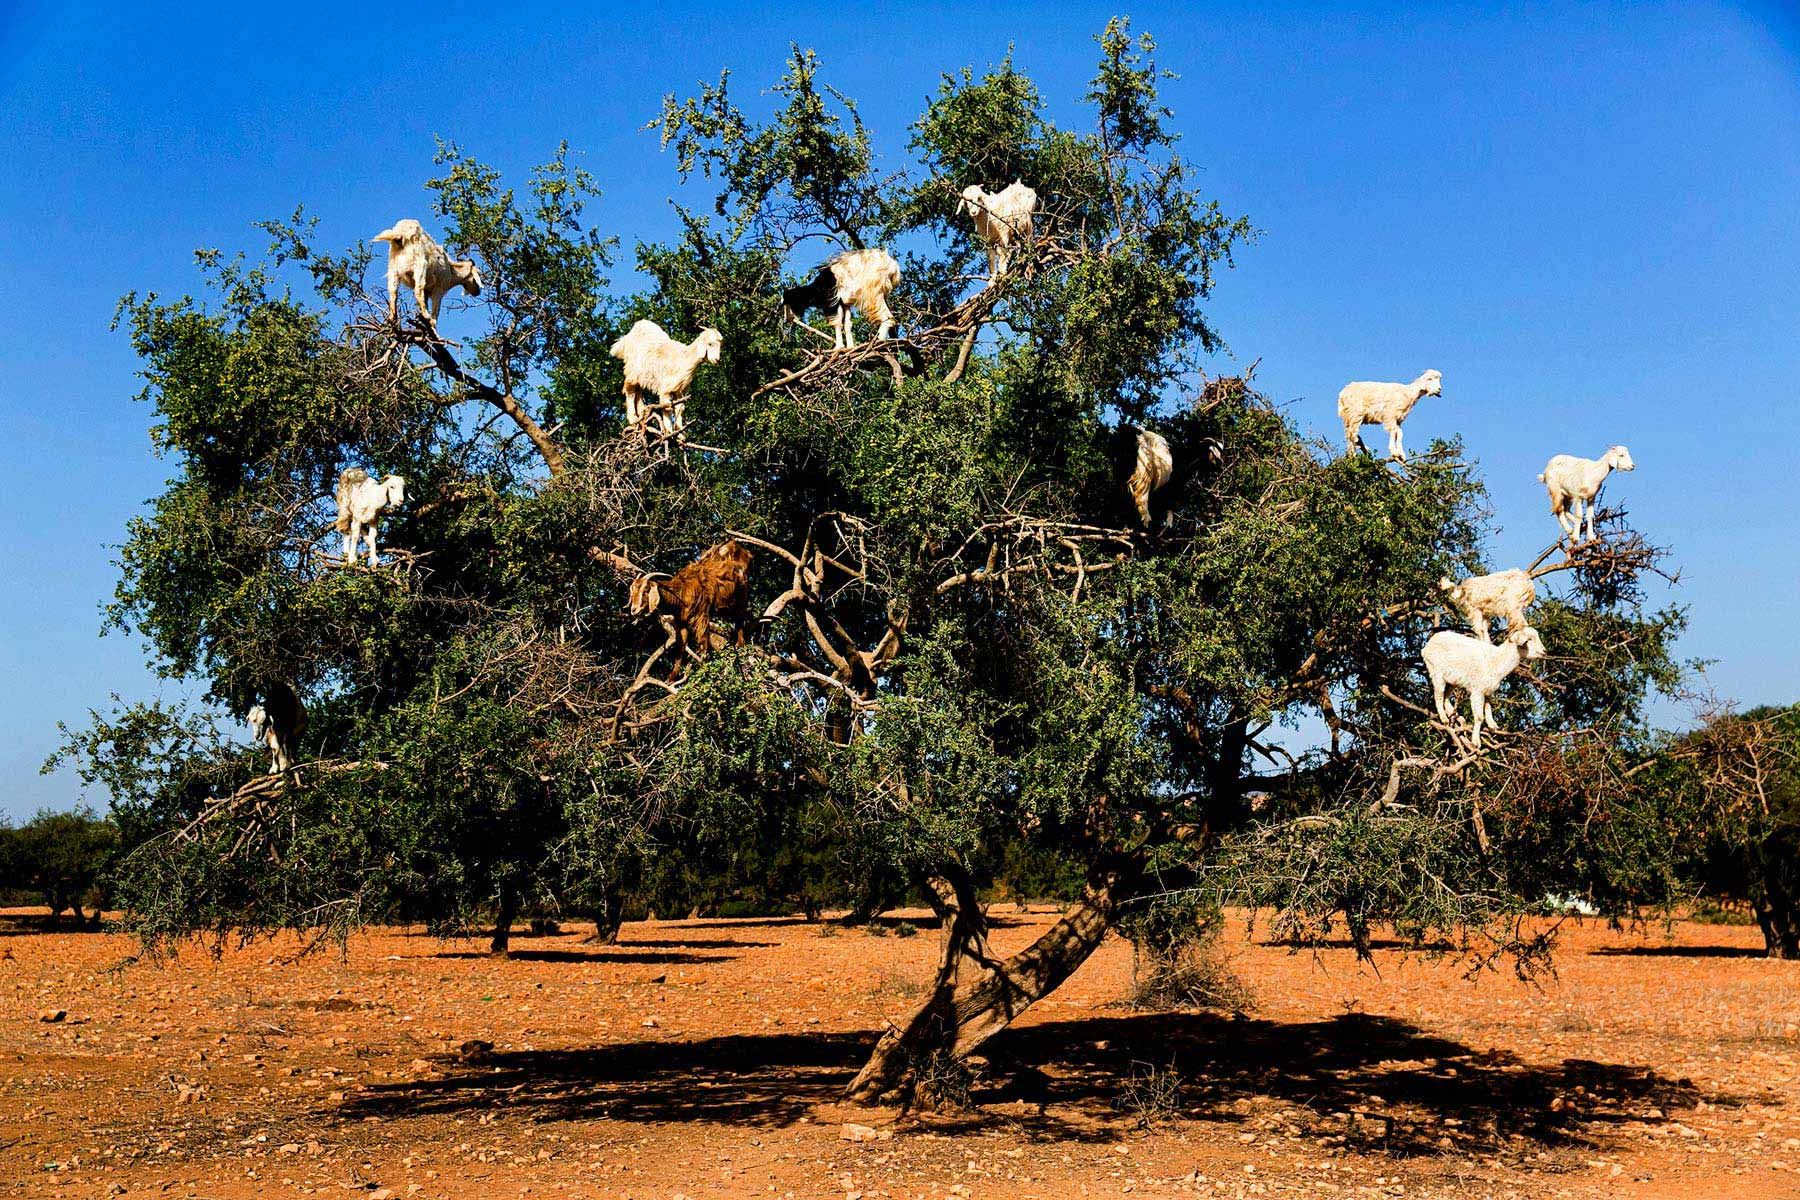 Park Art My WordPress Blog_How Long Does Goat Take To Deliver To South Africa